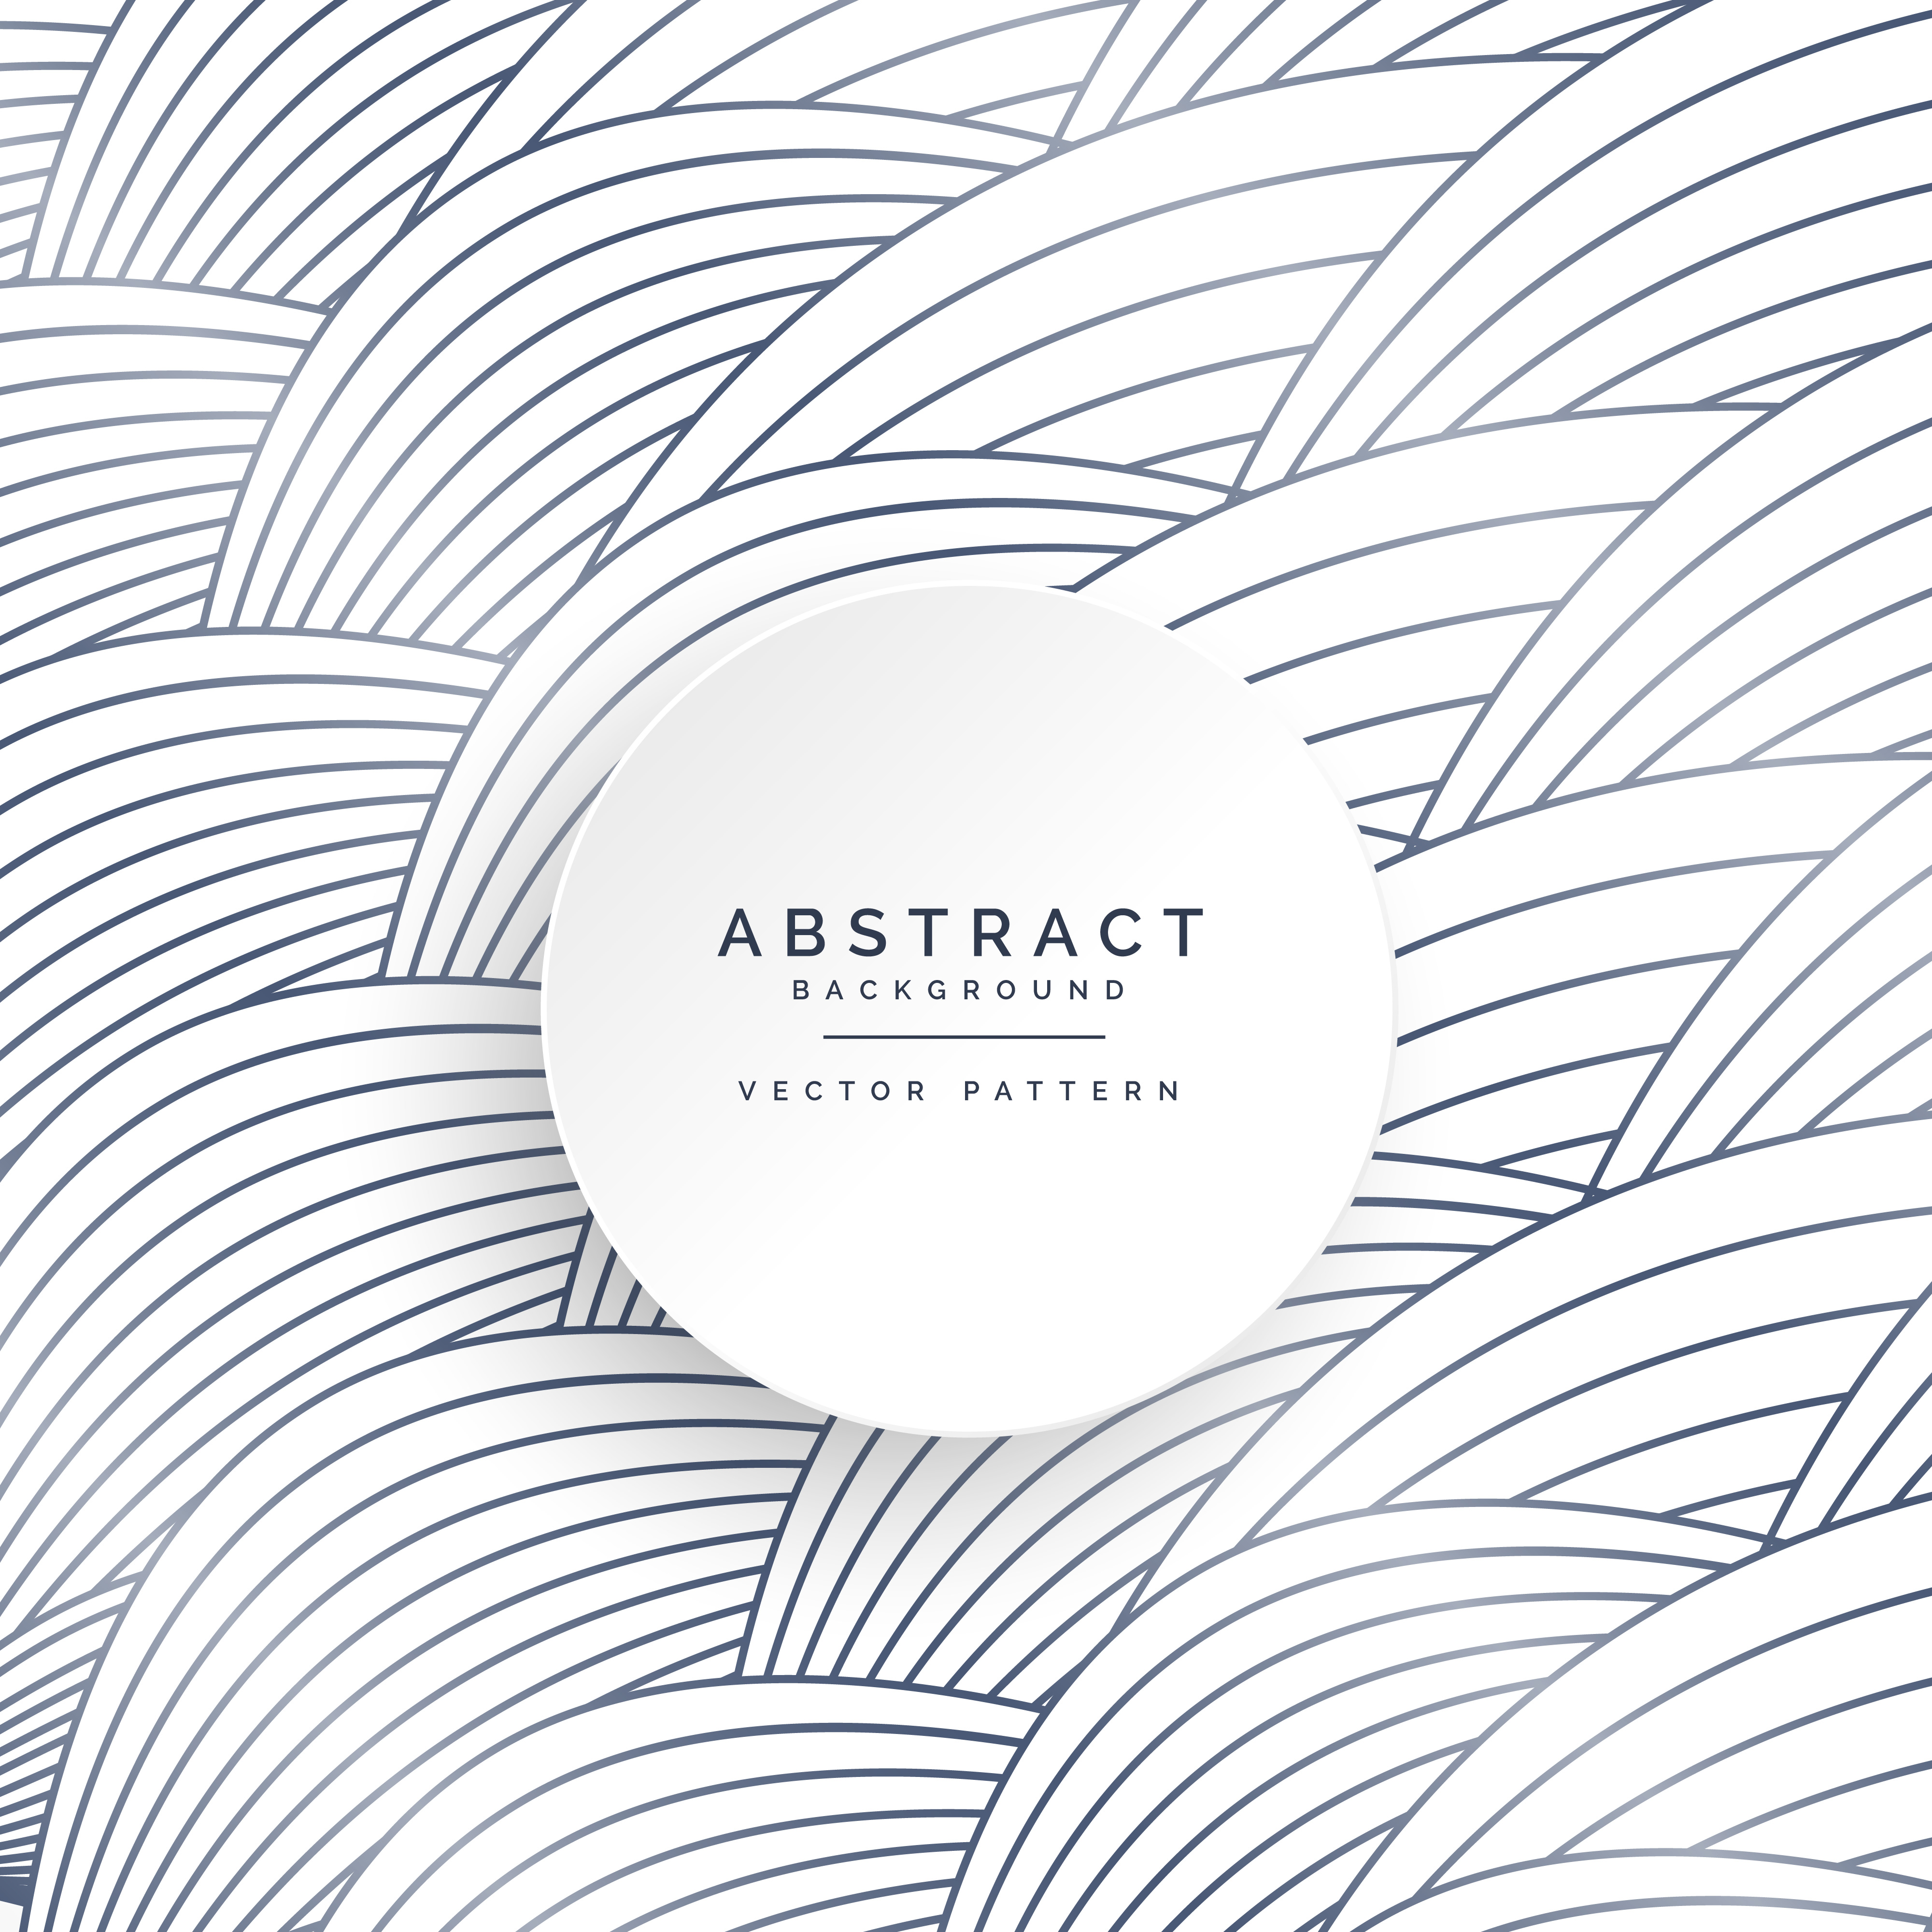 Vector Drawing Lines Examples : Curve wavy lines pattern background download free vector